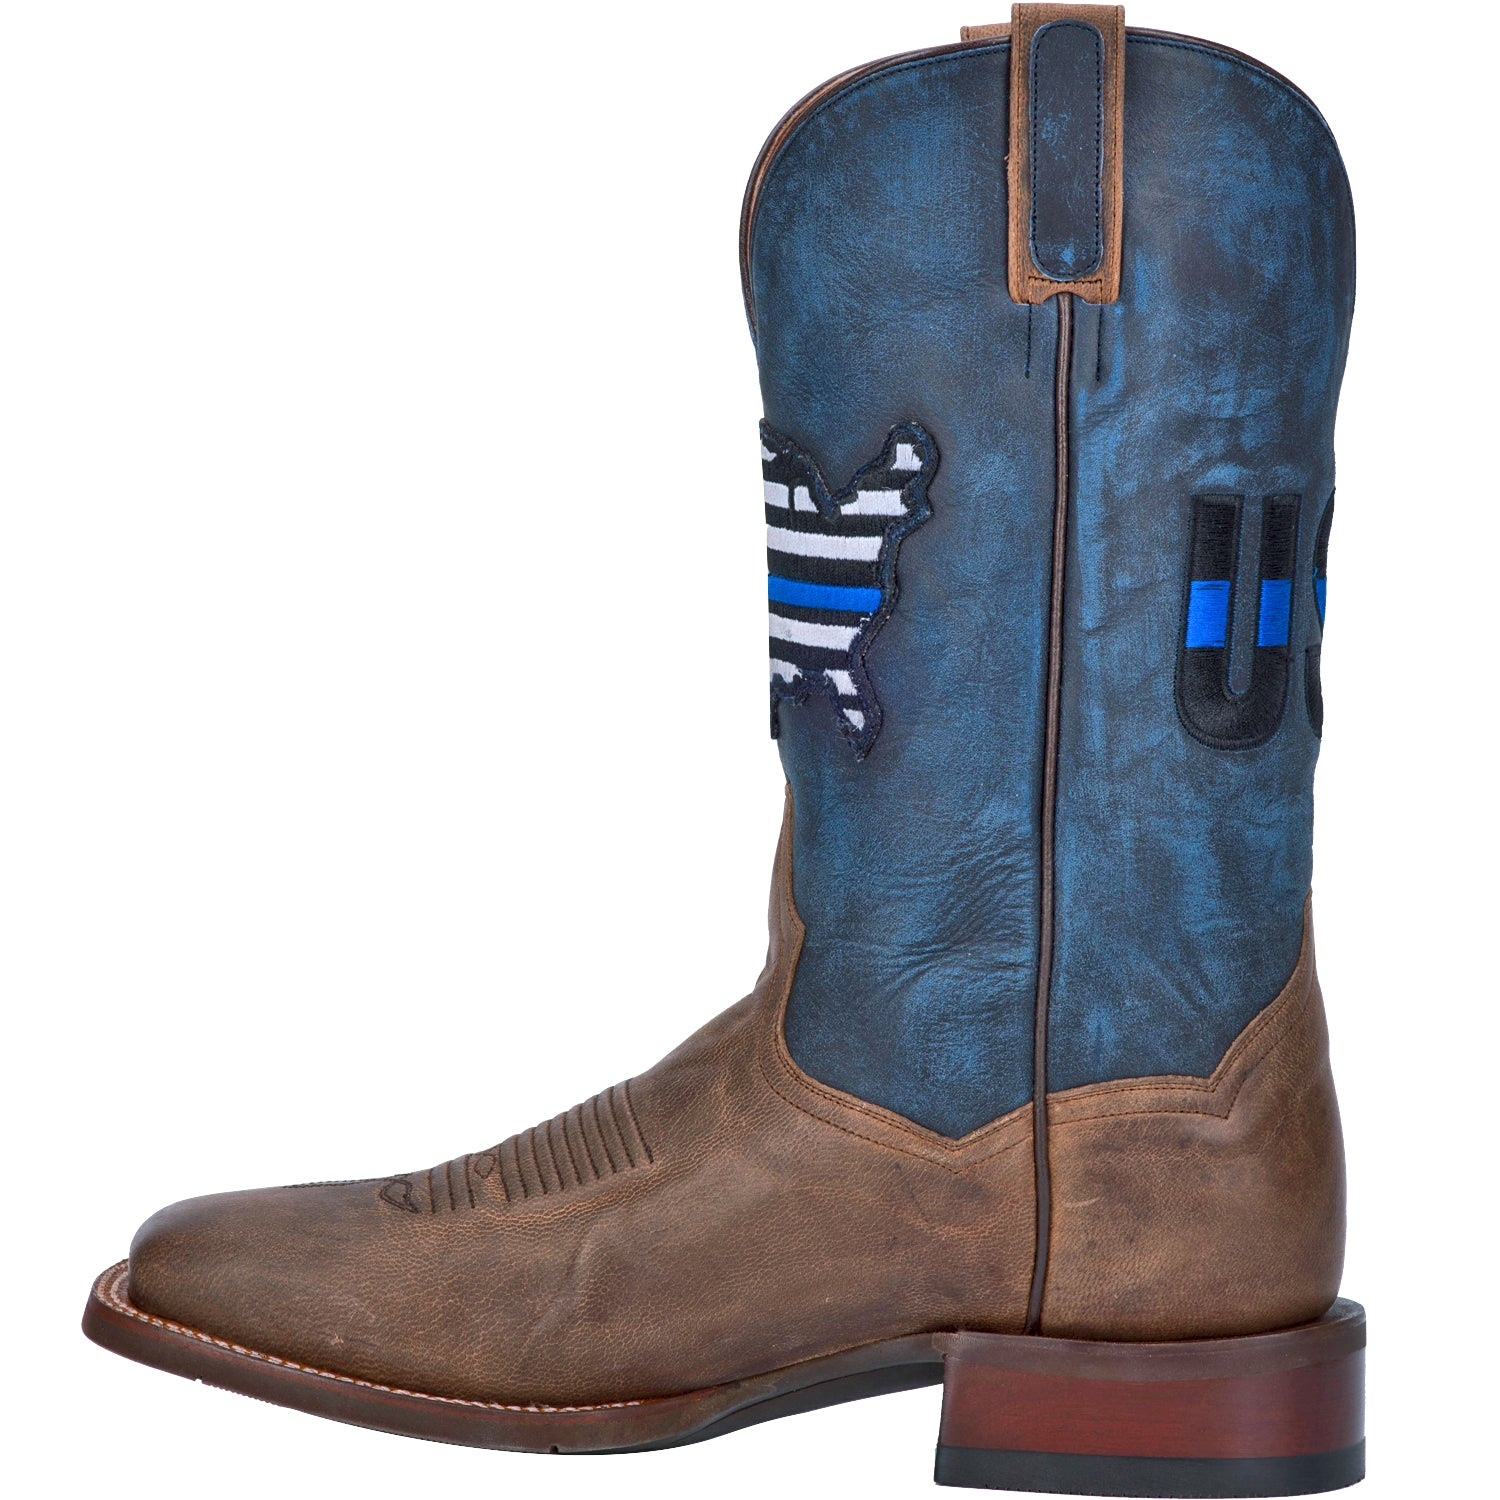 THIN BLUE LINE LEATHER BOOT 4197236146218